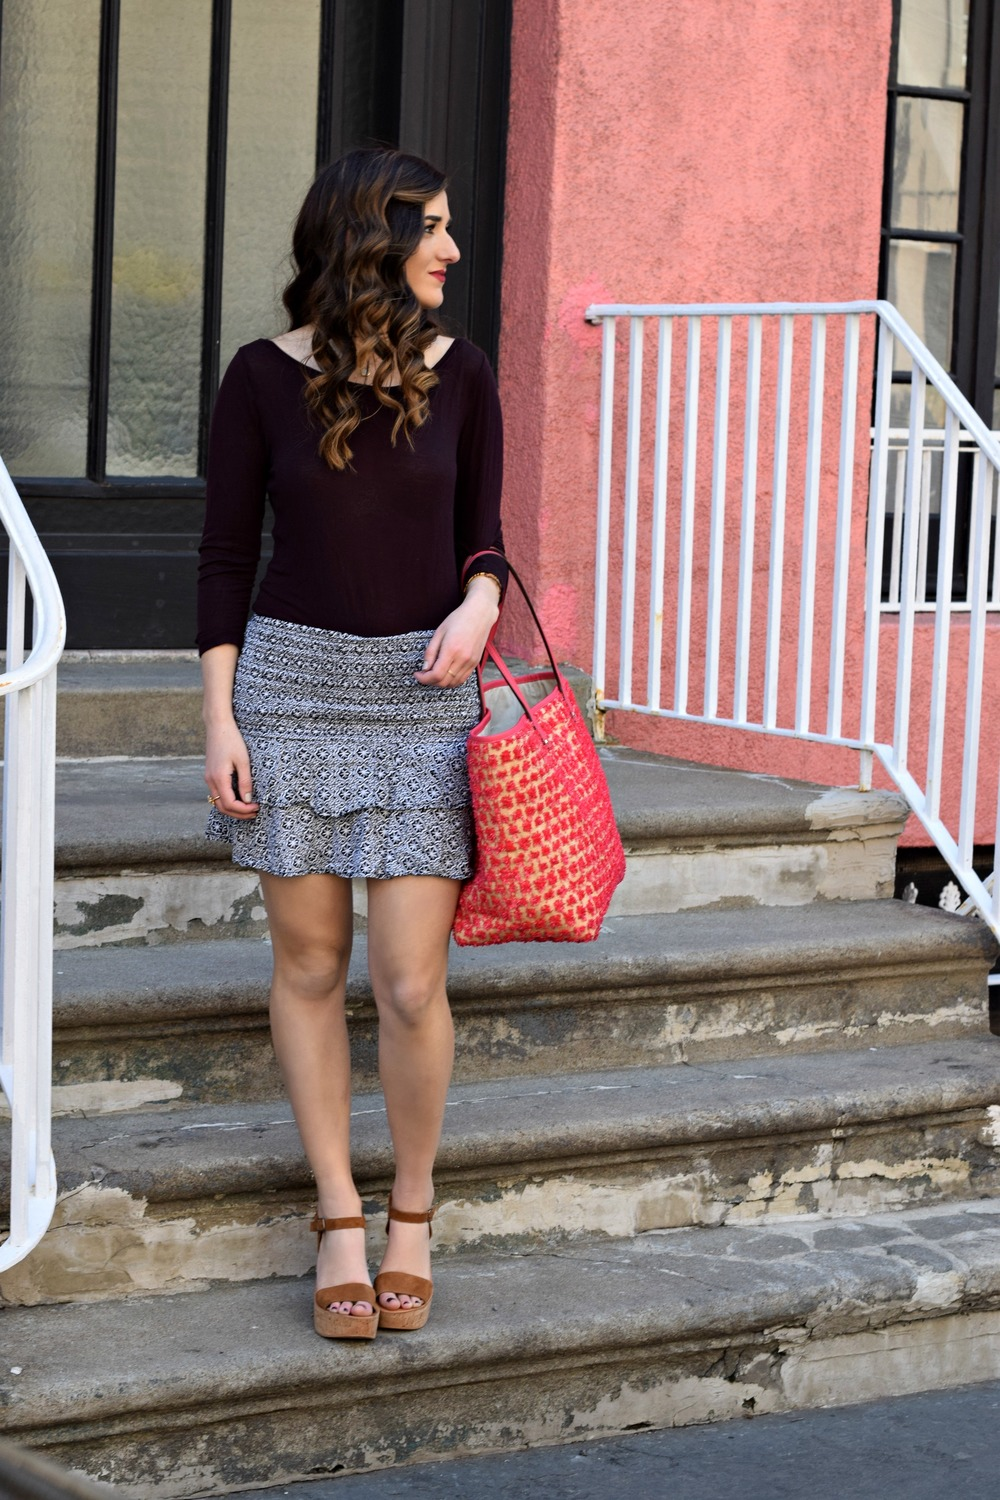 Printed Mini Skirt Henri Bendel Pom Pom Tote Louboutins & Love Fashion Blog Esther Santer NYC Street Style Blogger Outfit OOTD Summer Look Pretty Beautiful Inspo Photoshoot Hair Girl Women Shoes Wedges Sandals Pink Purple Colorful Shopping Beach Bag.jpg